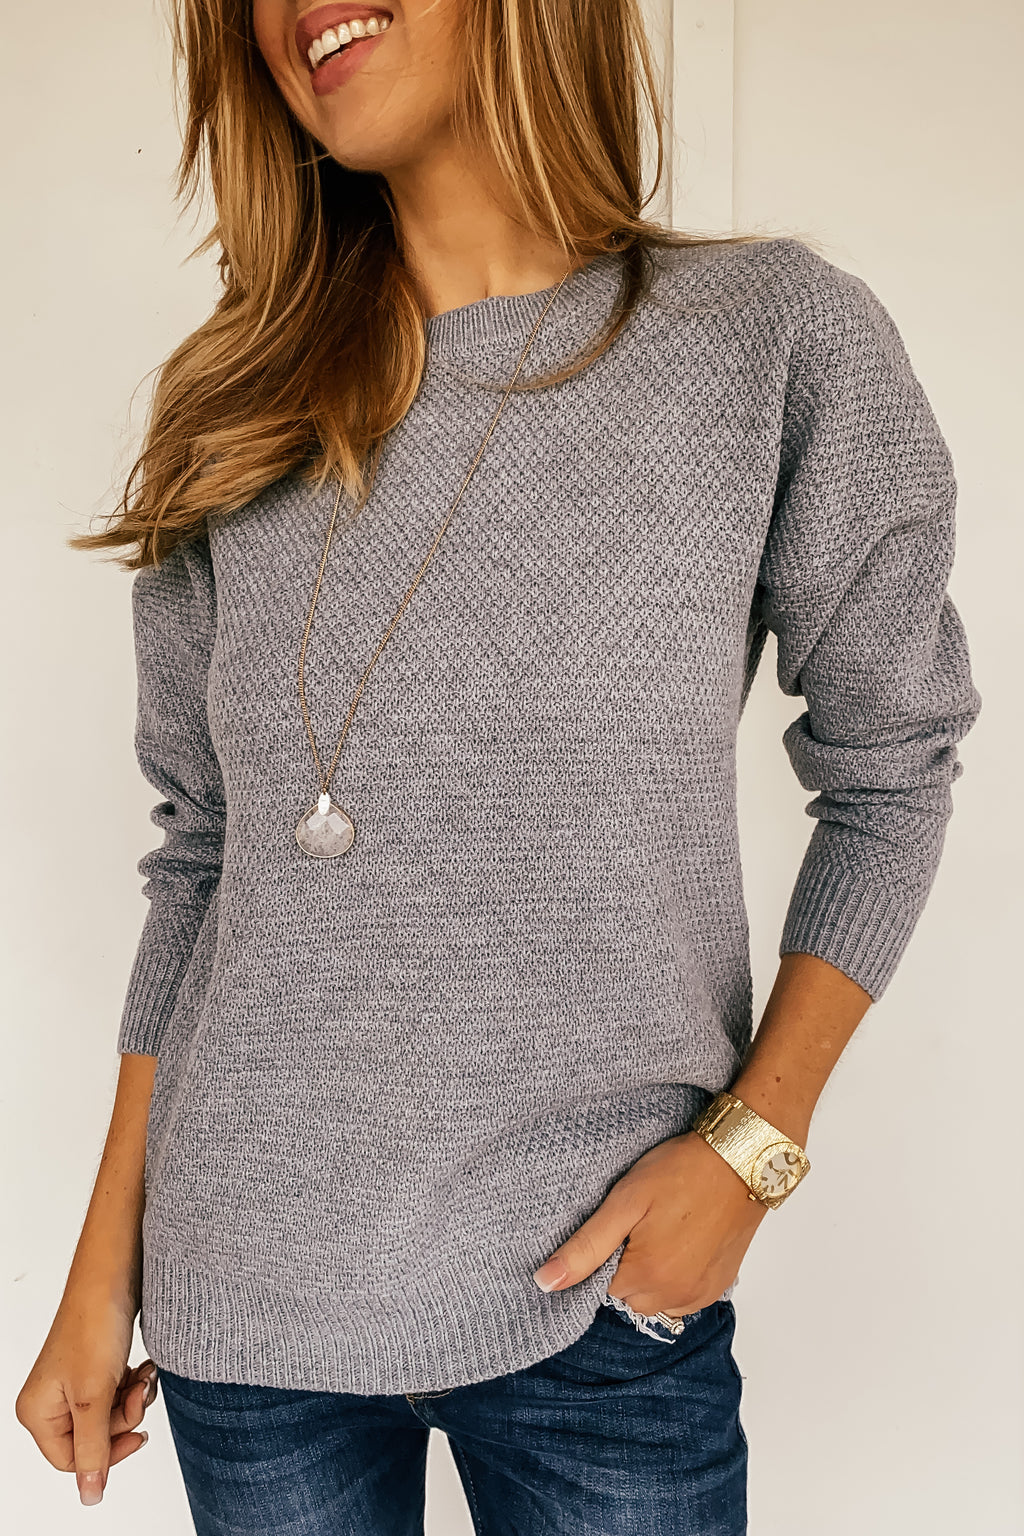 The Simple Shelby Sweater in Heather Grey